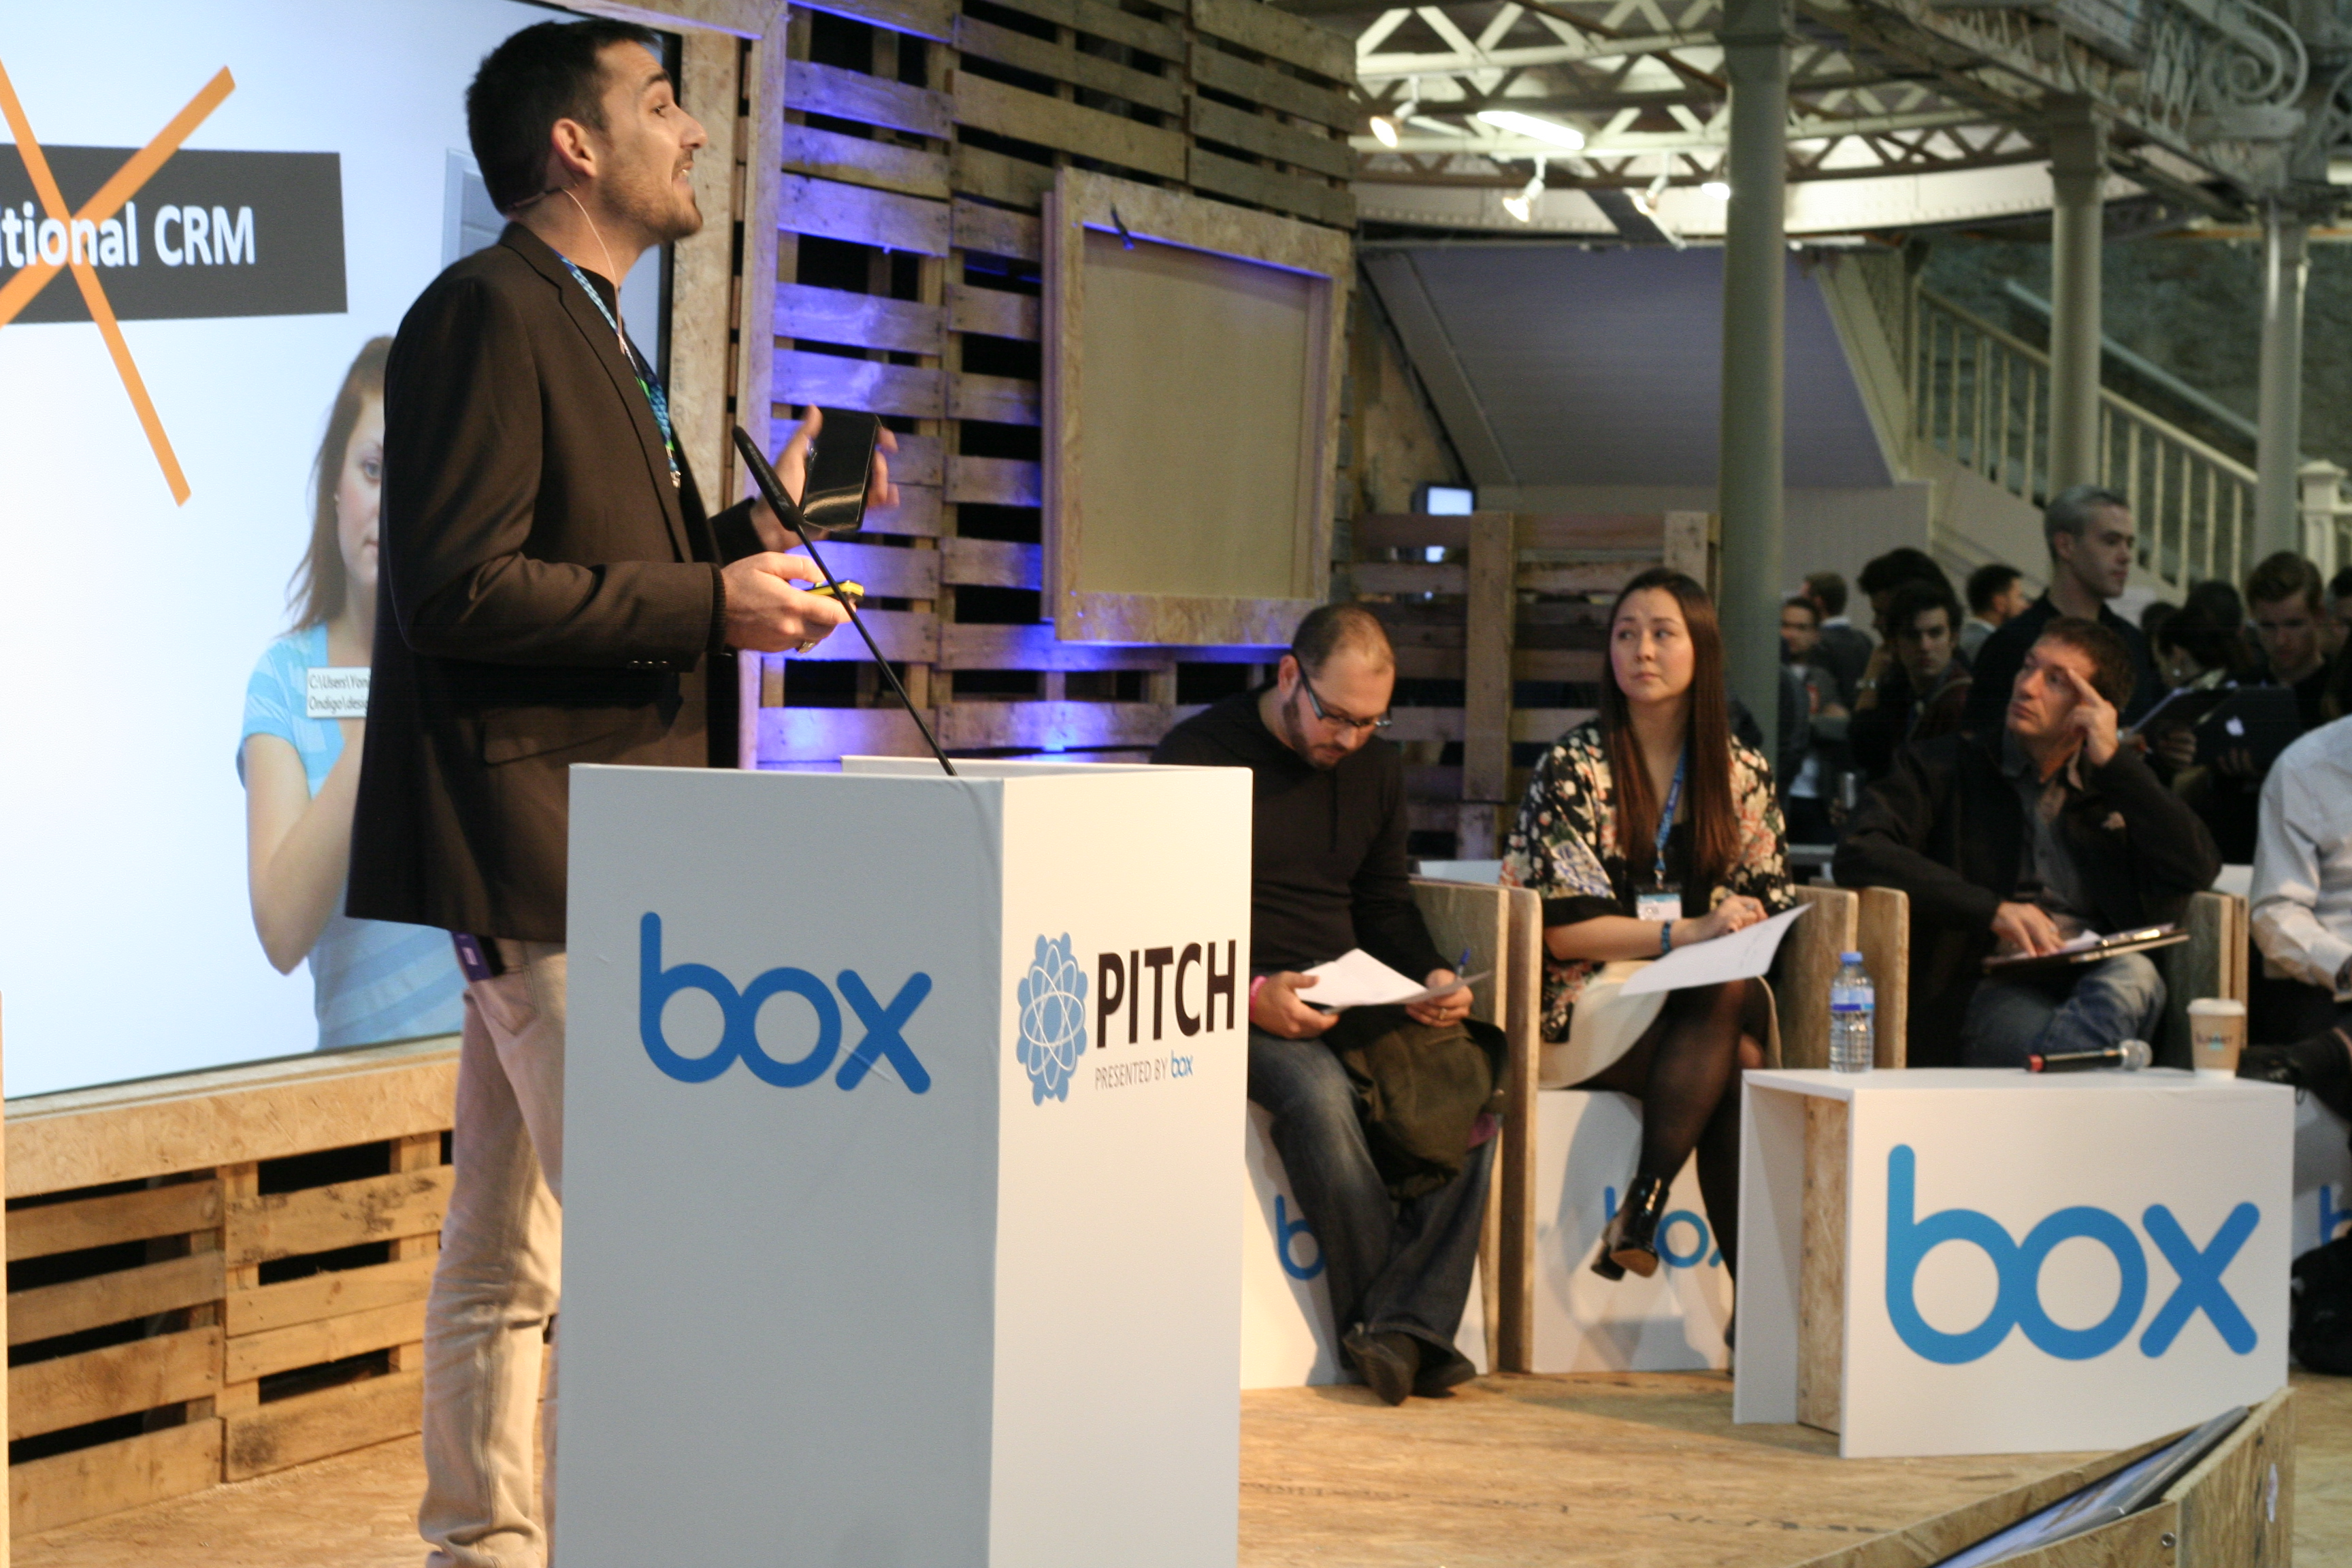 Companies pitching their ideas to investors